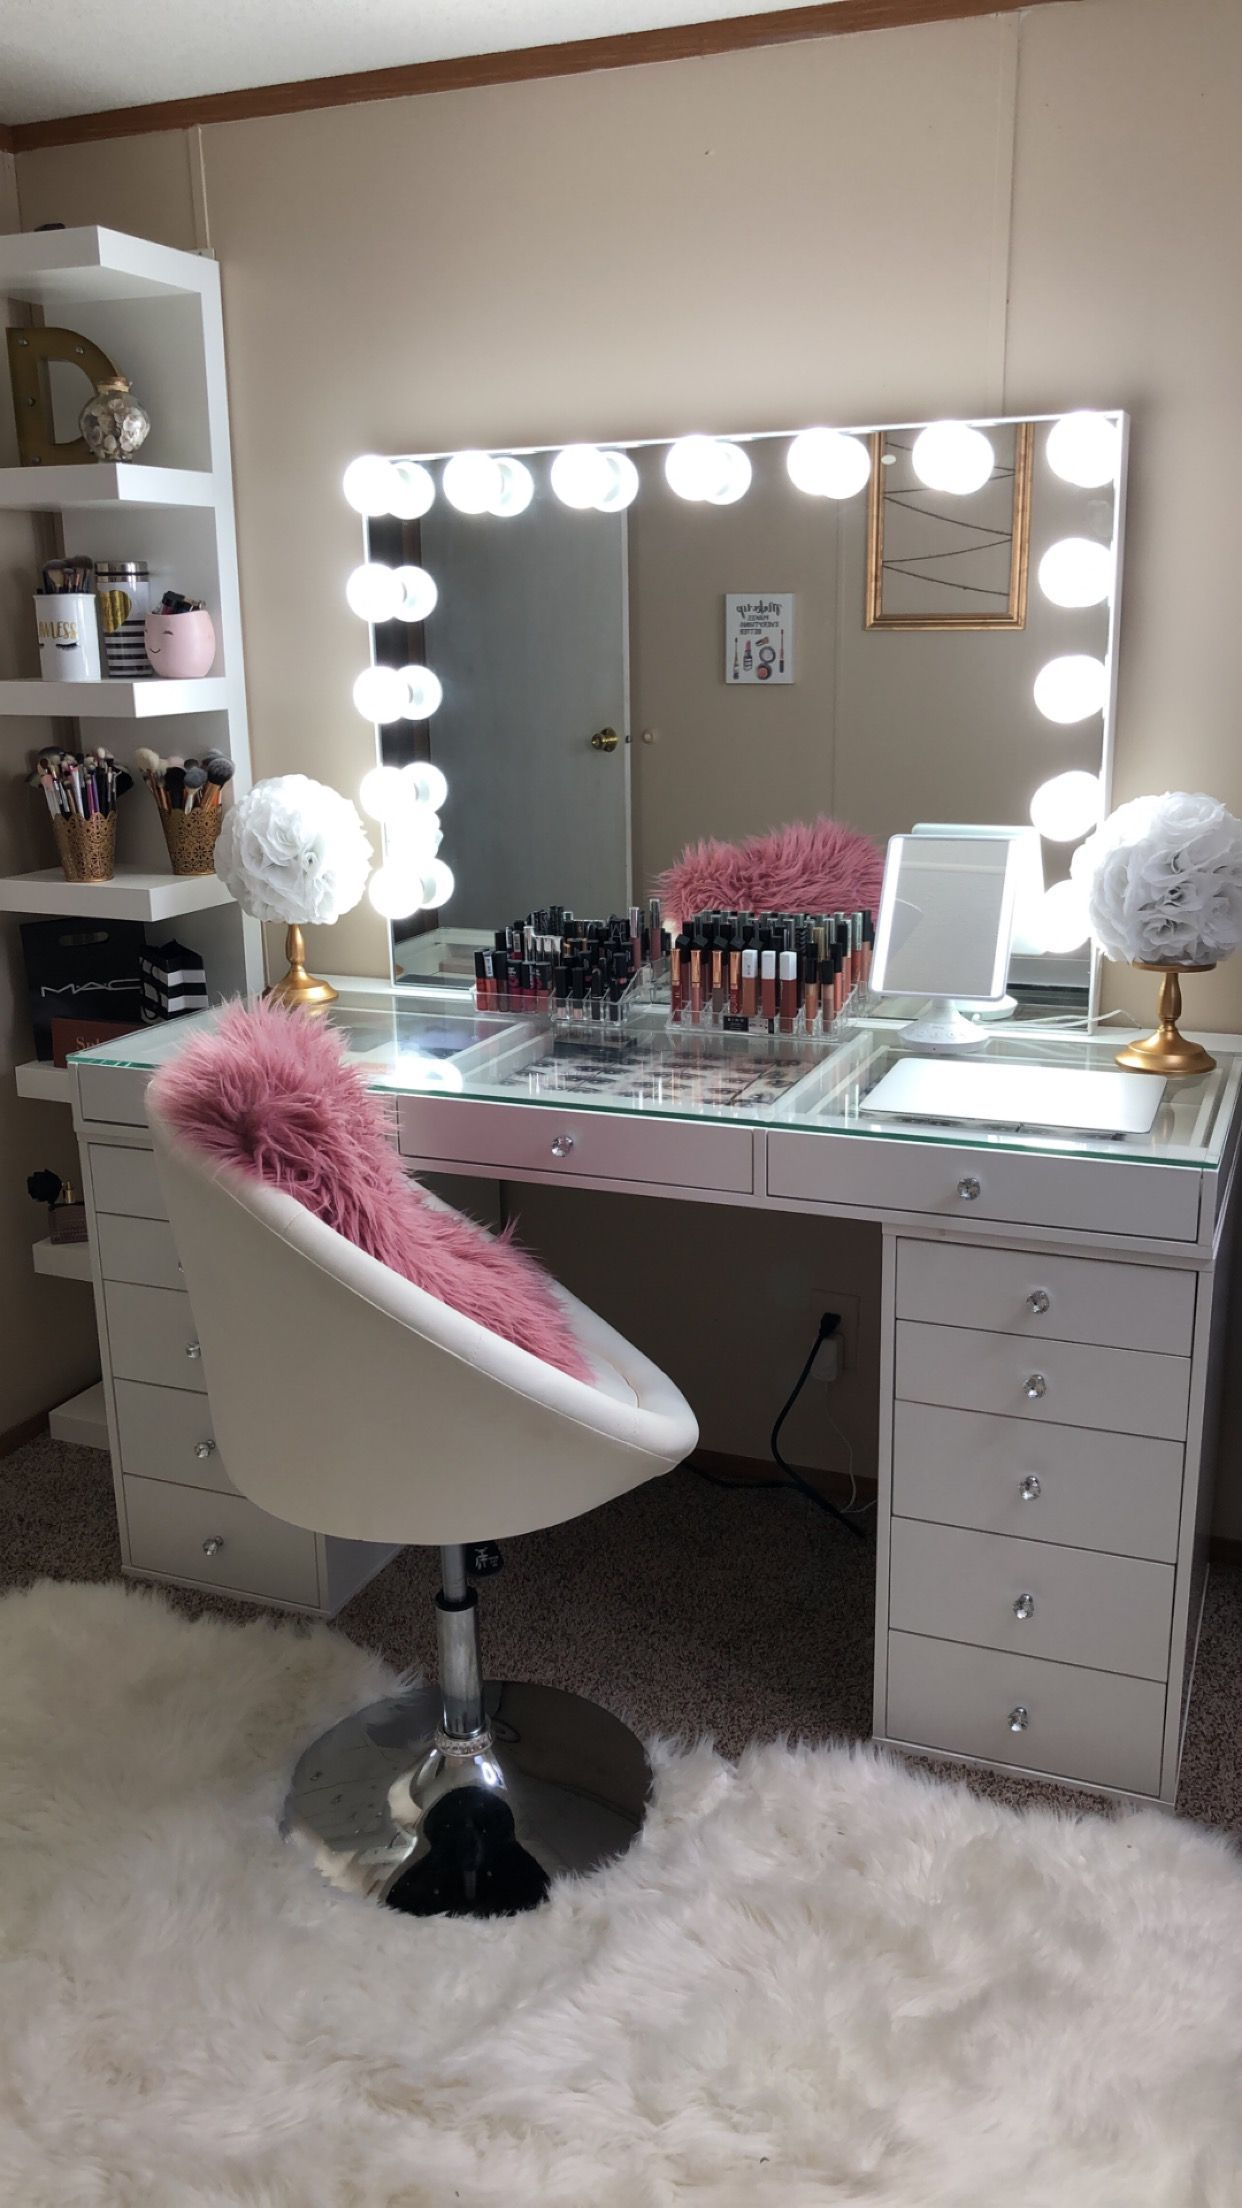 SlayStation® Pro 2.0 Tabletop + Vanity Mirror + 5